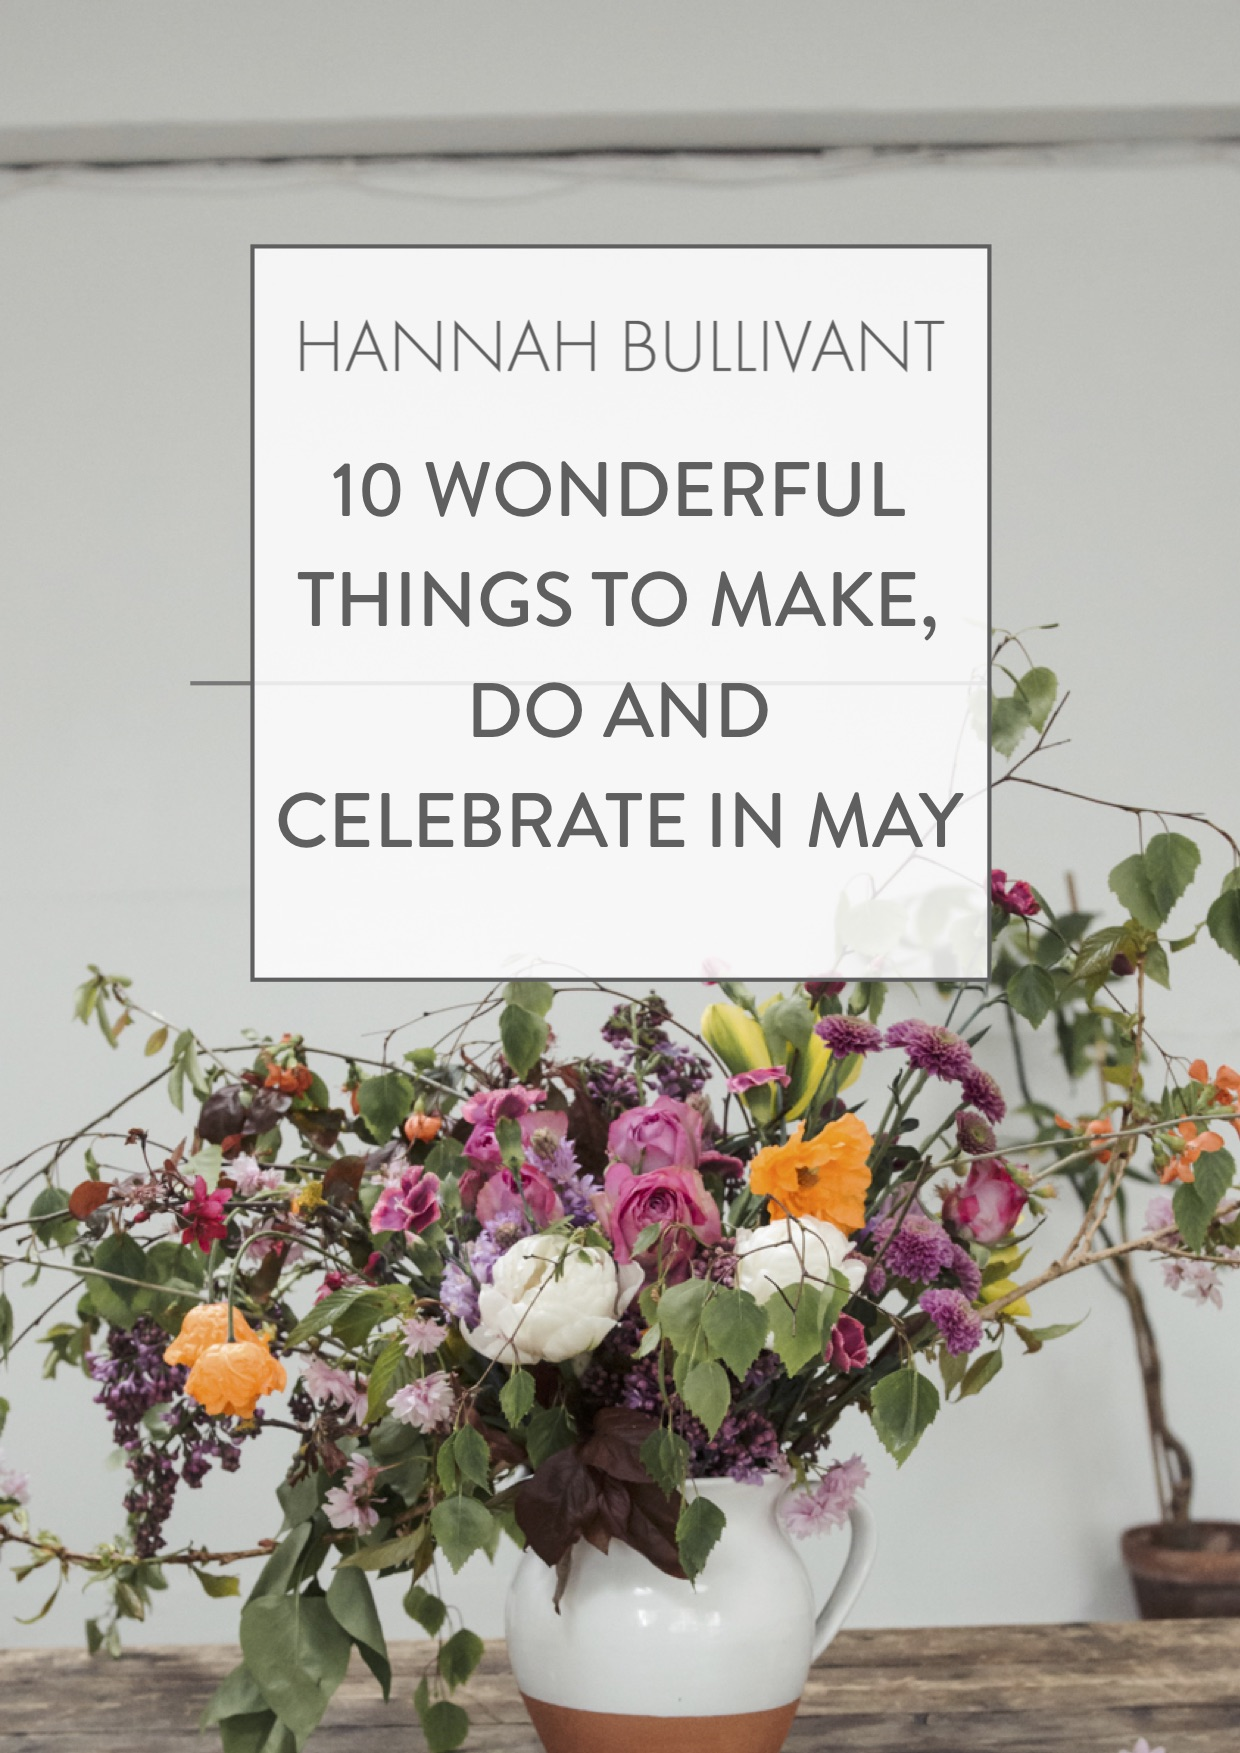 10 wonderful things to make, do and celebrate in May | Hannah Bullivant